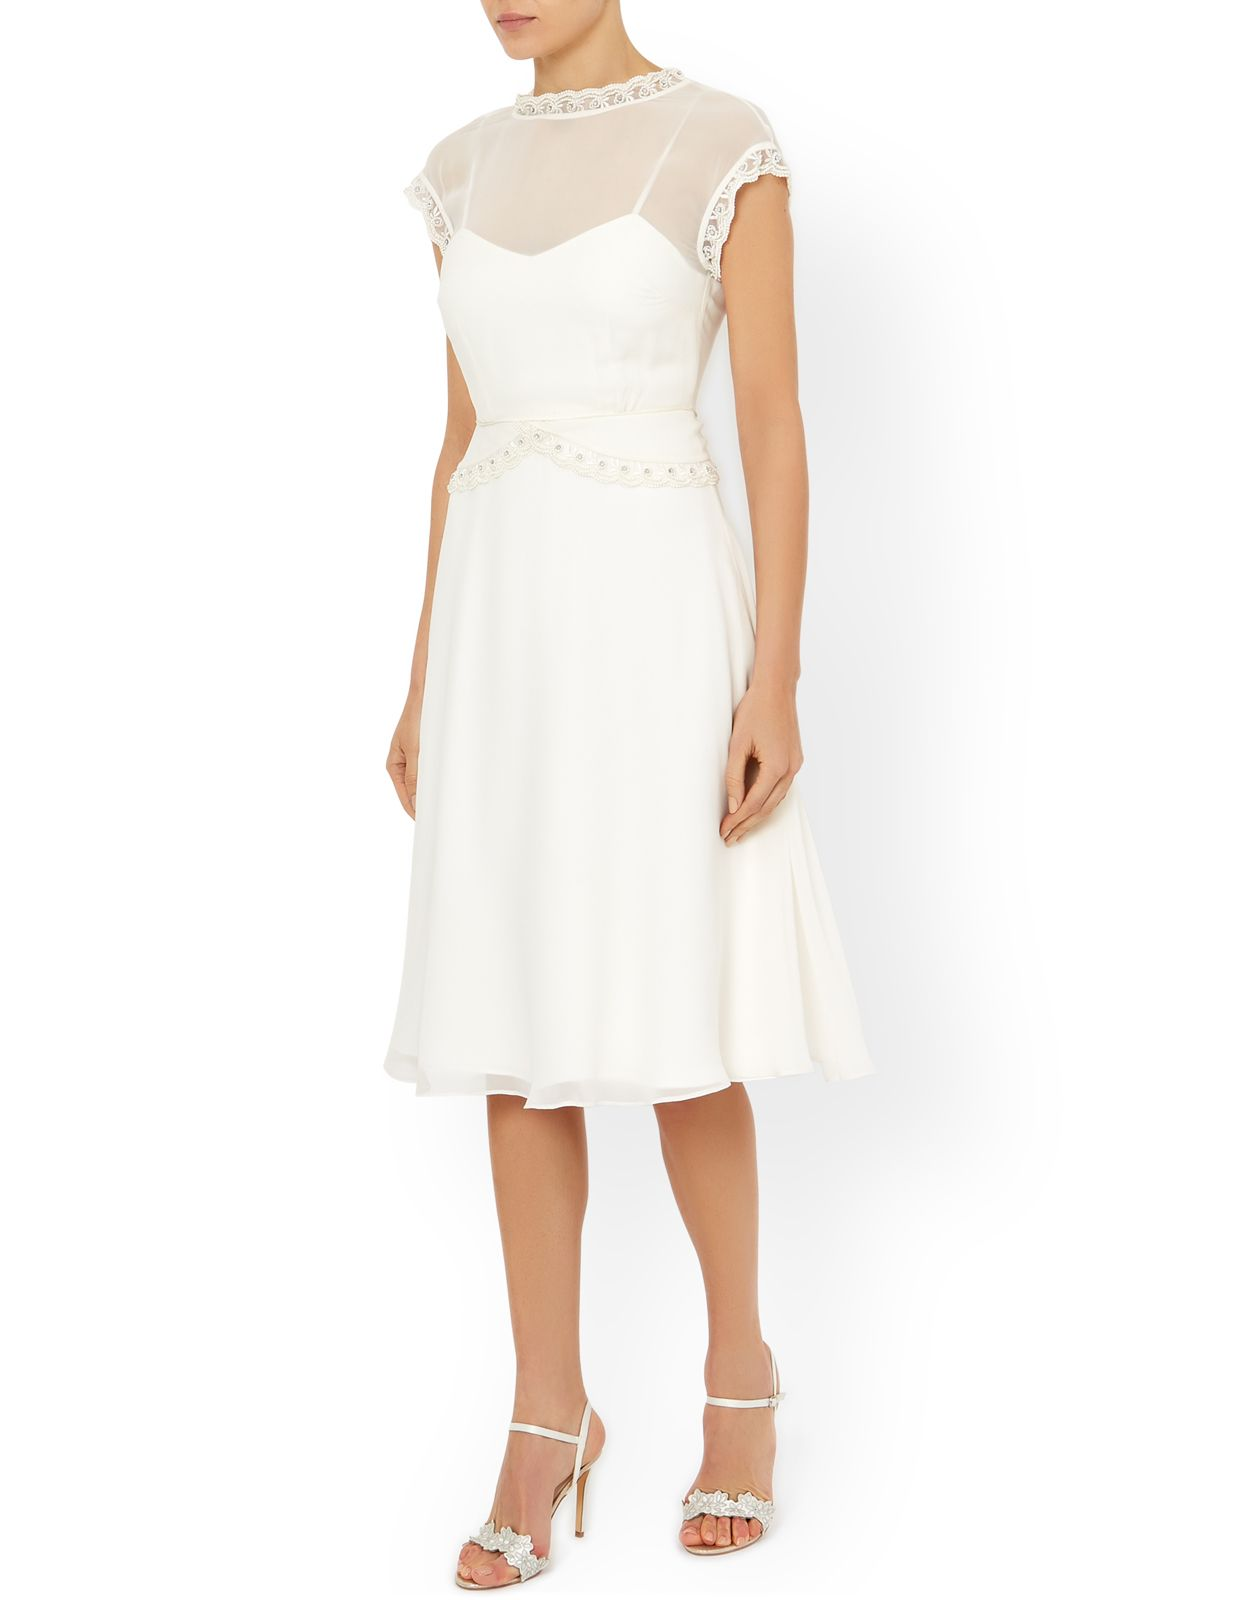 Aria Bridal Wedding Dress On sale at a great price at the time of ...